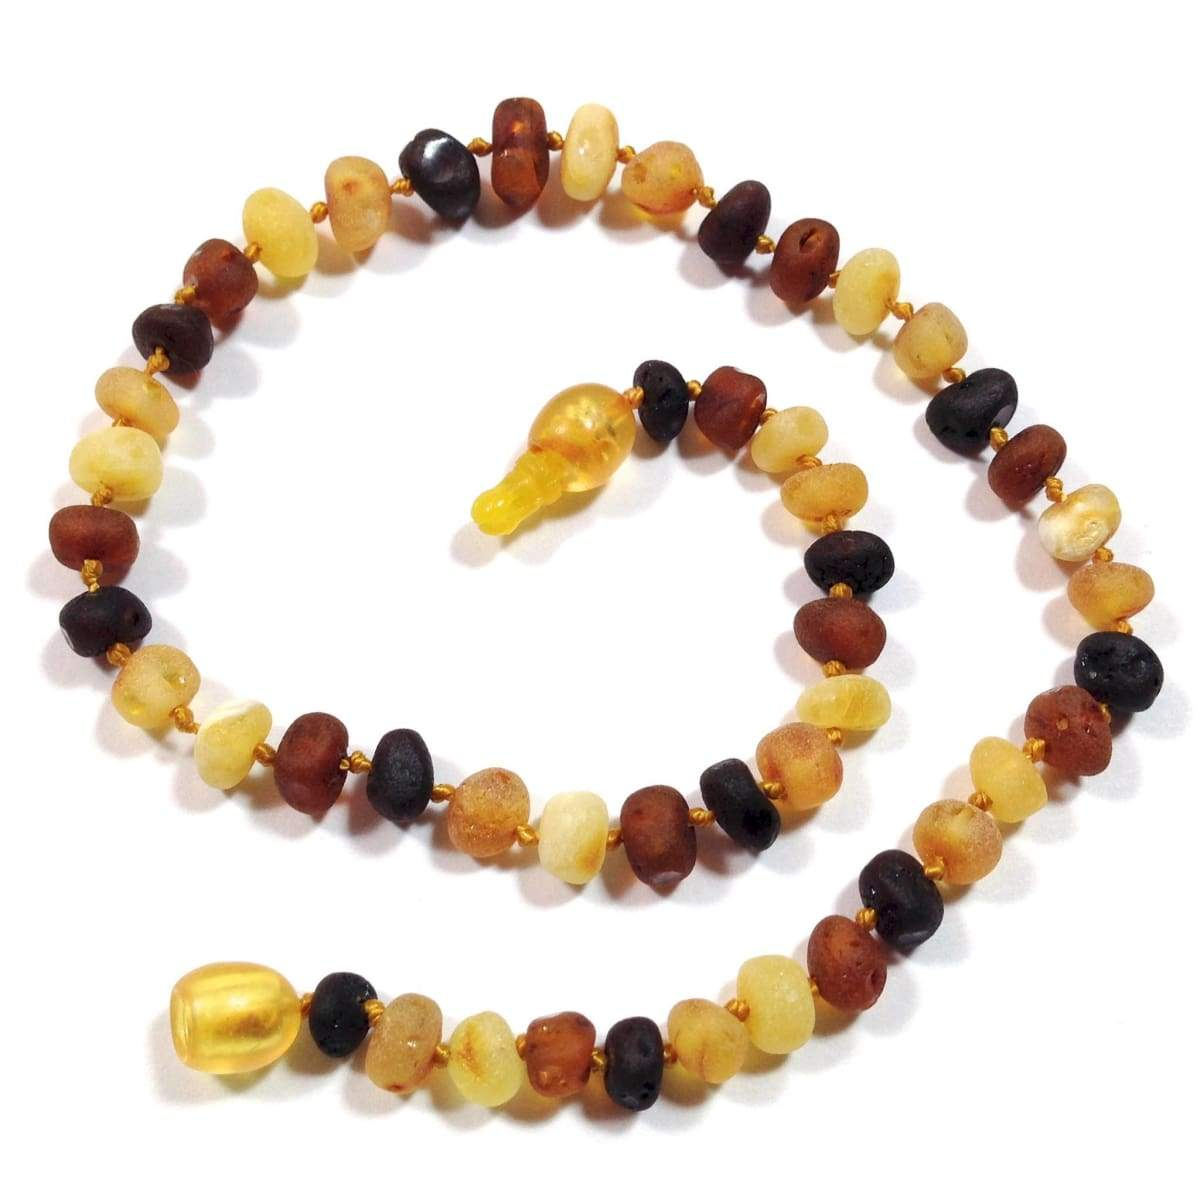 Baltic Amber Multicolored Semi-Polish - 12 Necklace - Pop Clasp - Baltic Amber Jewelry